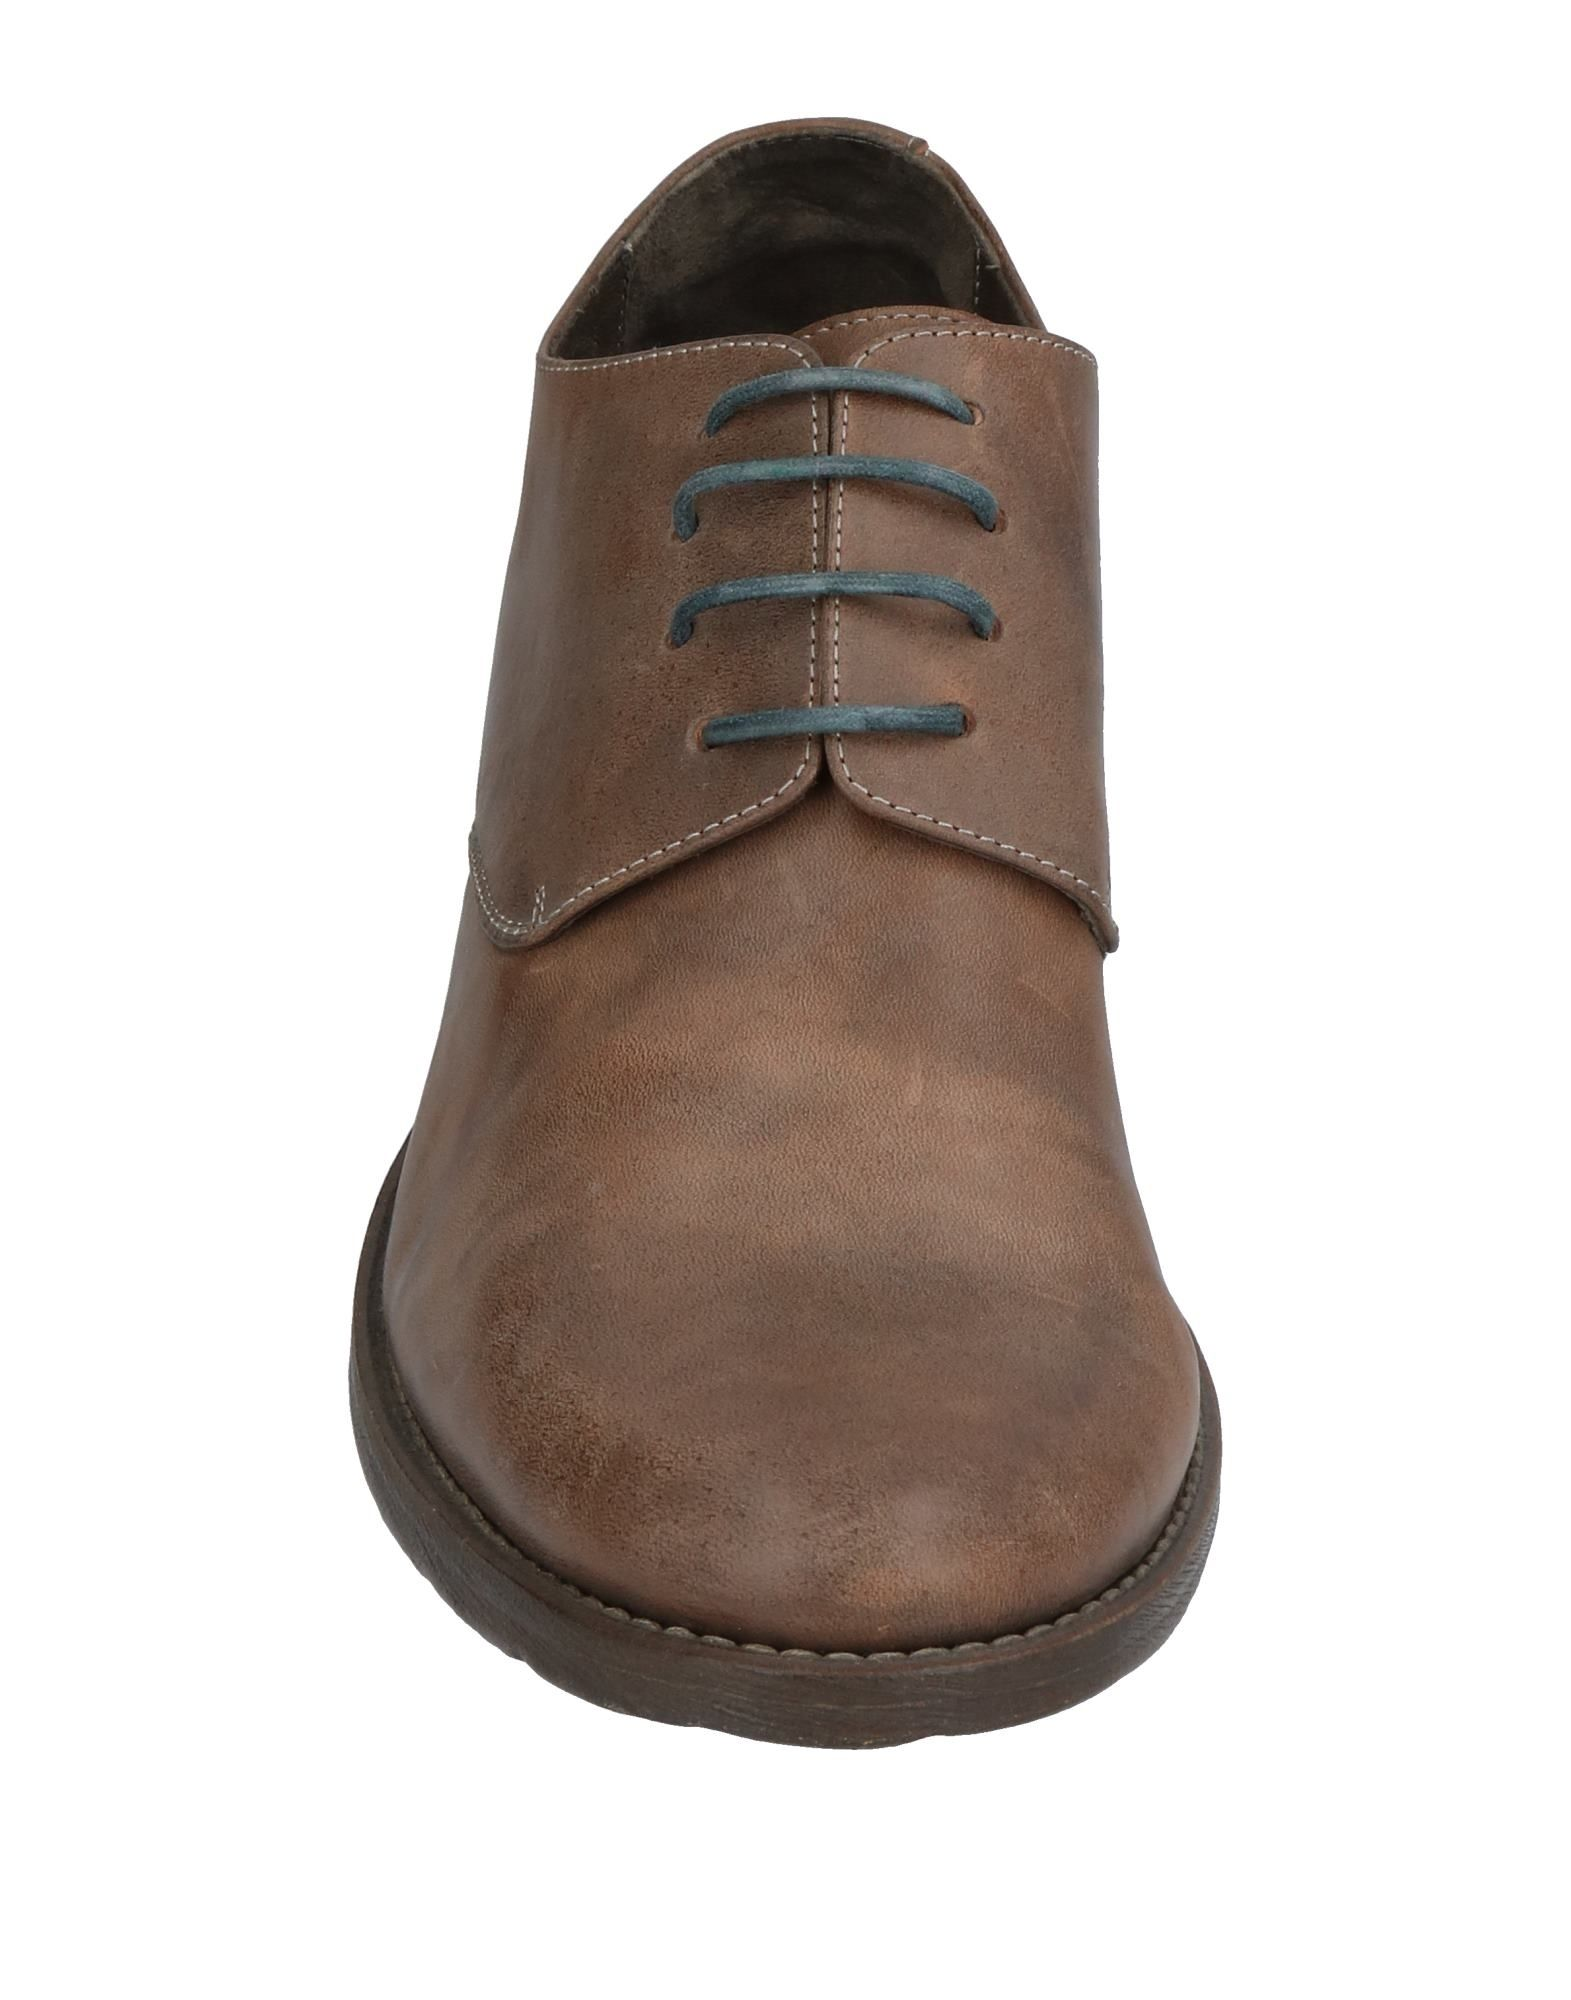 Chaussures - Chaussures À Lacets Giorgio Brato oxD6autf